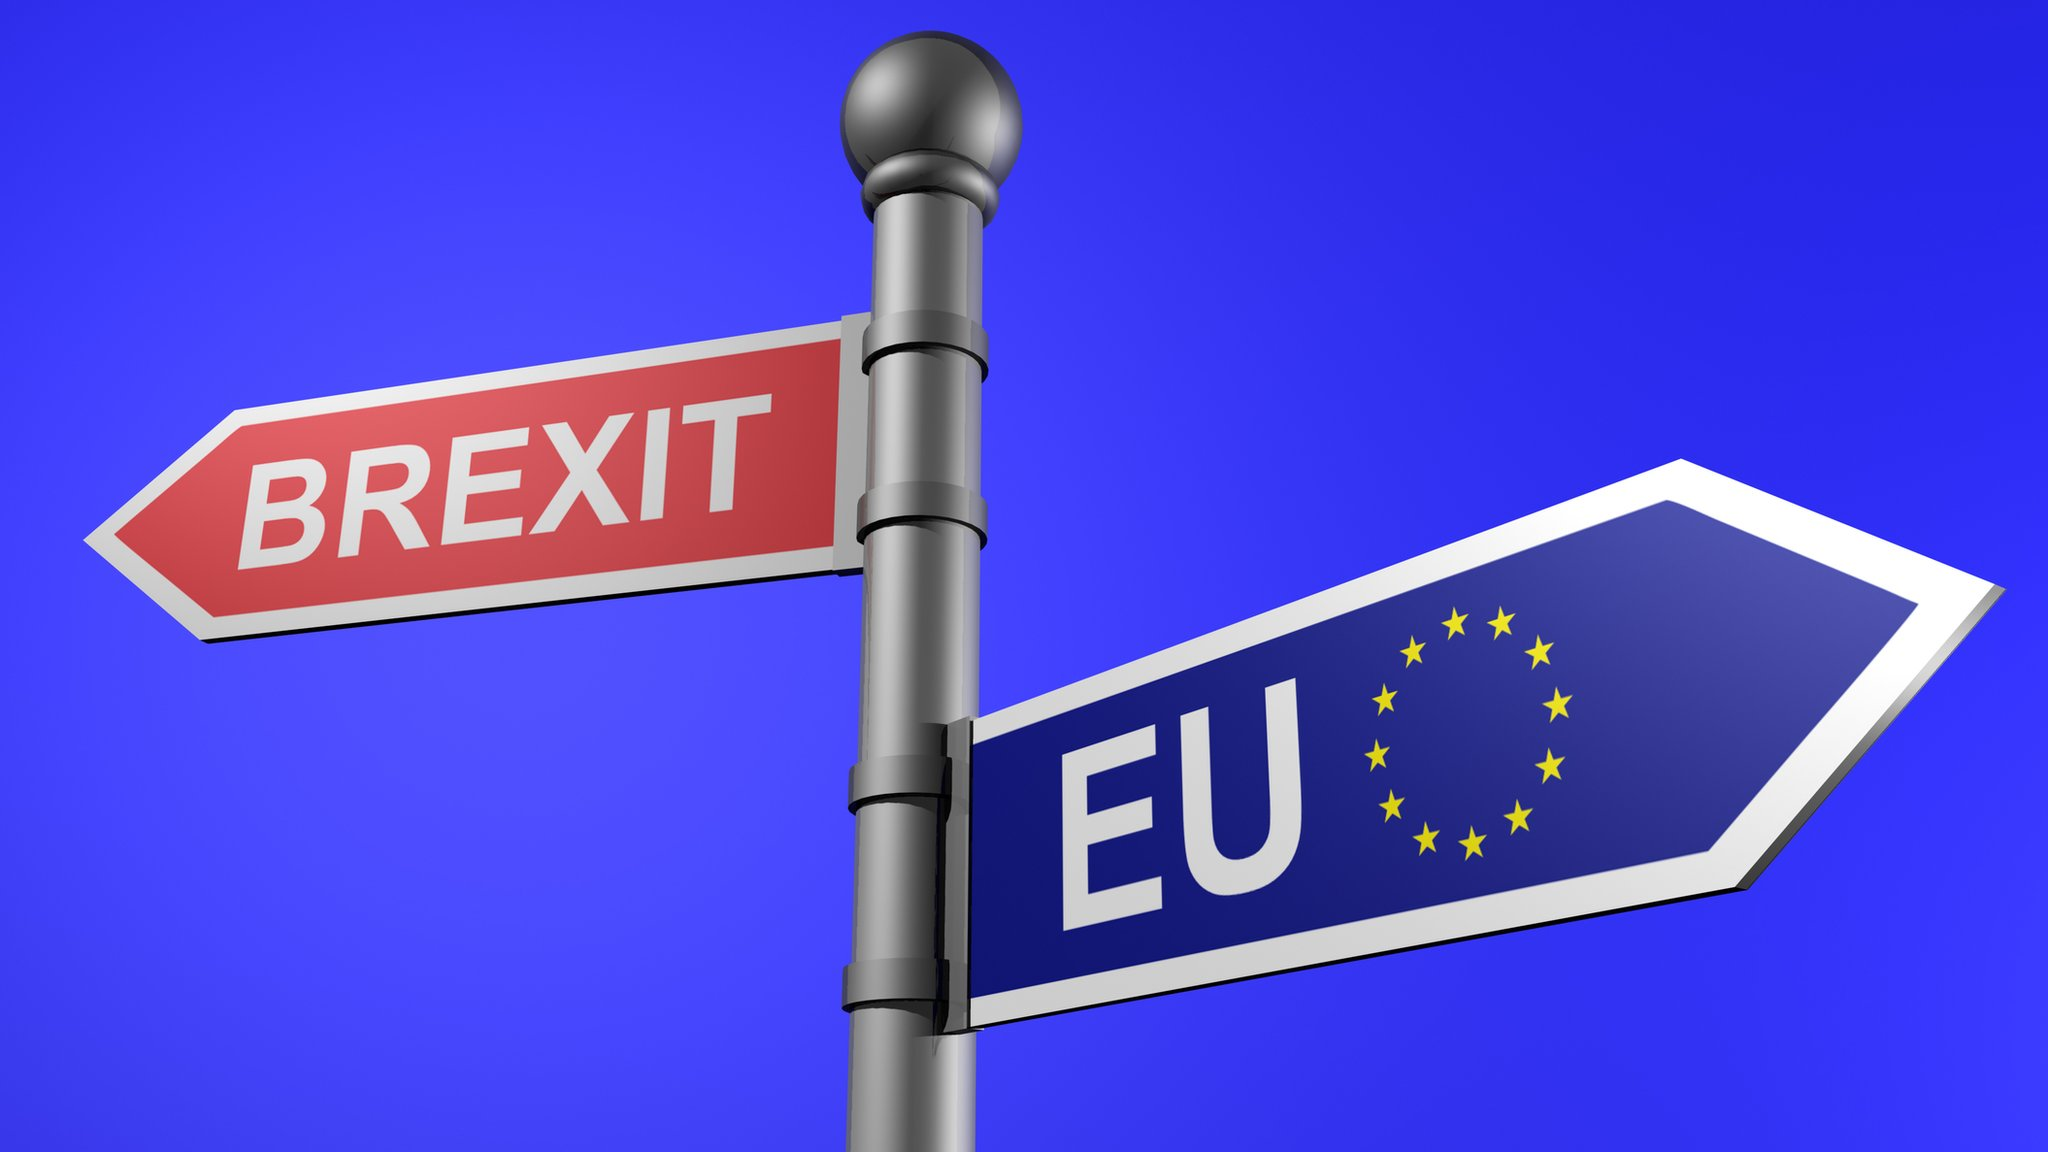 Brexit: What does it mean for expats, here and in the EU?